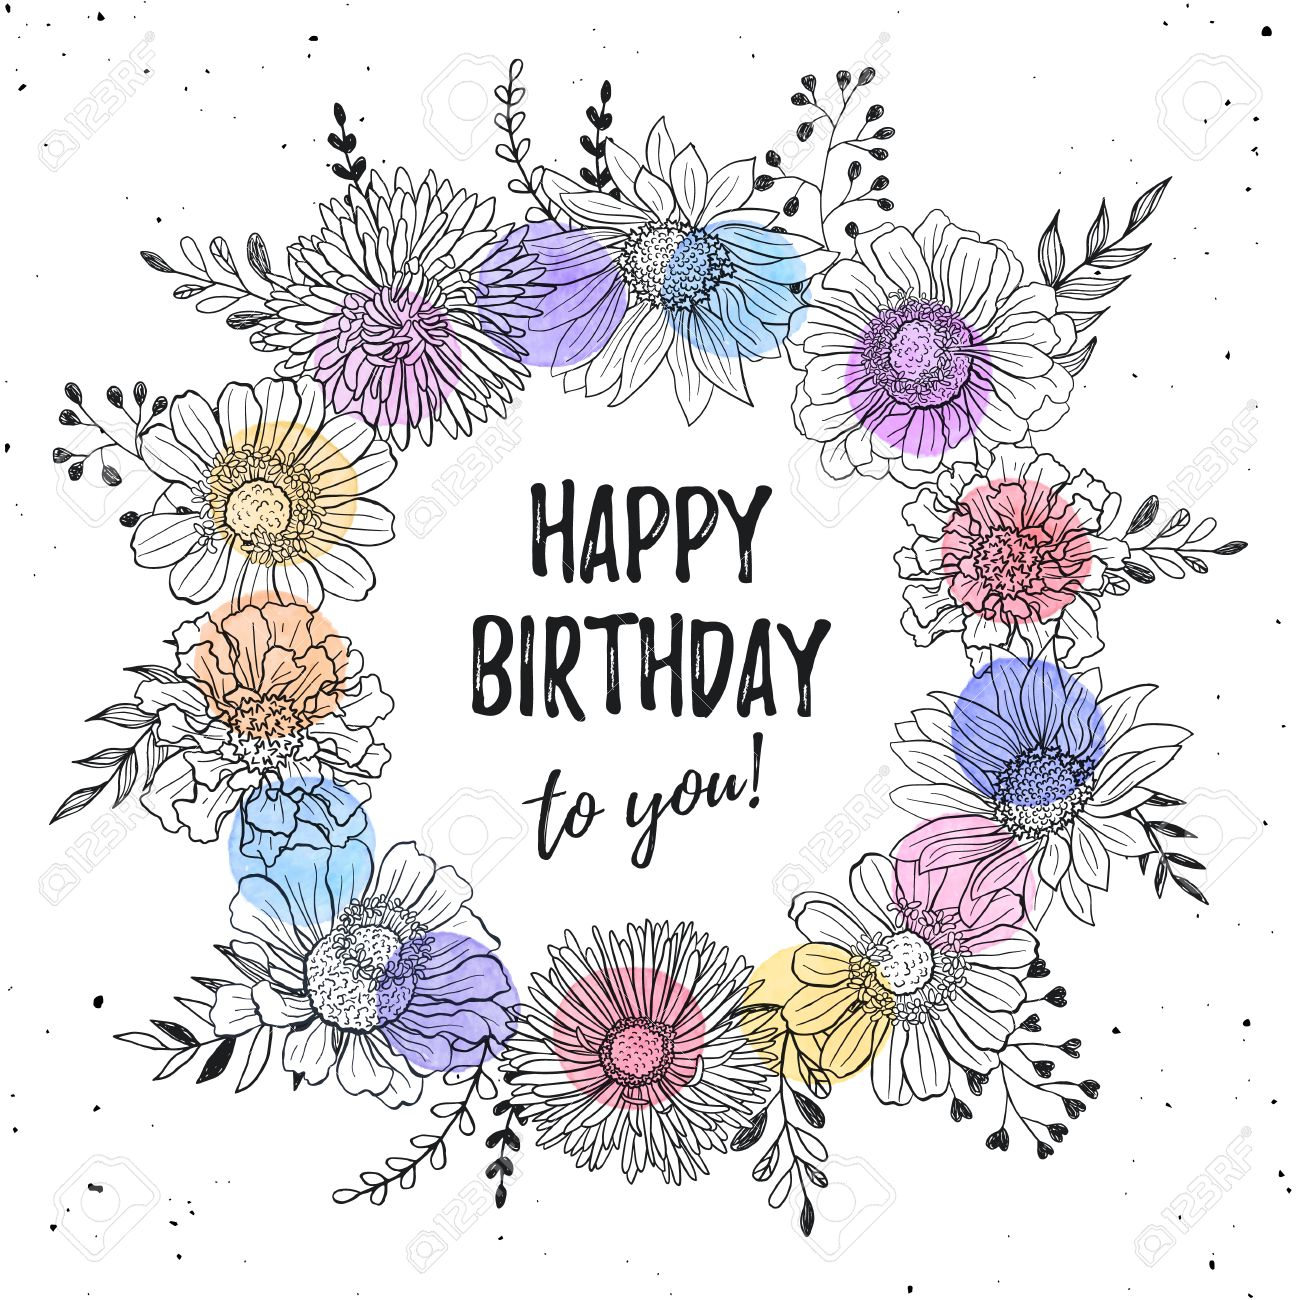 Birthday Greeting Card With Flowers Hand Drawn Black On White